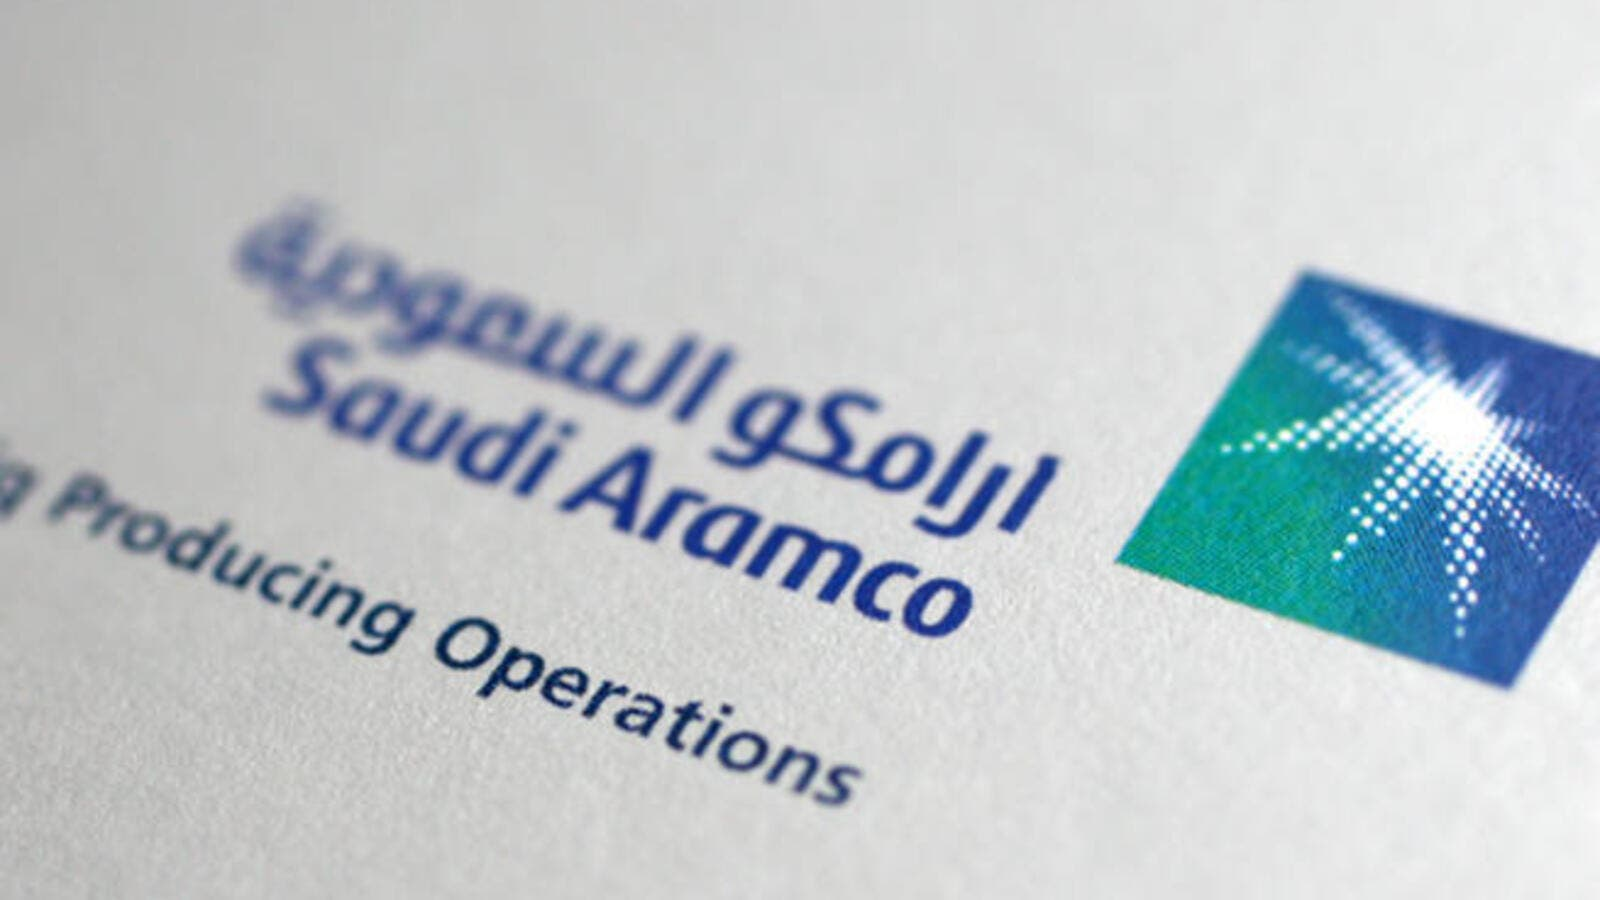 Saudi Aramco continues to champion the professional development of its women employees through the implementation of company functions. (File/Photo)